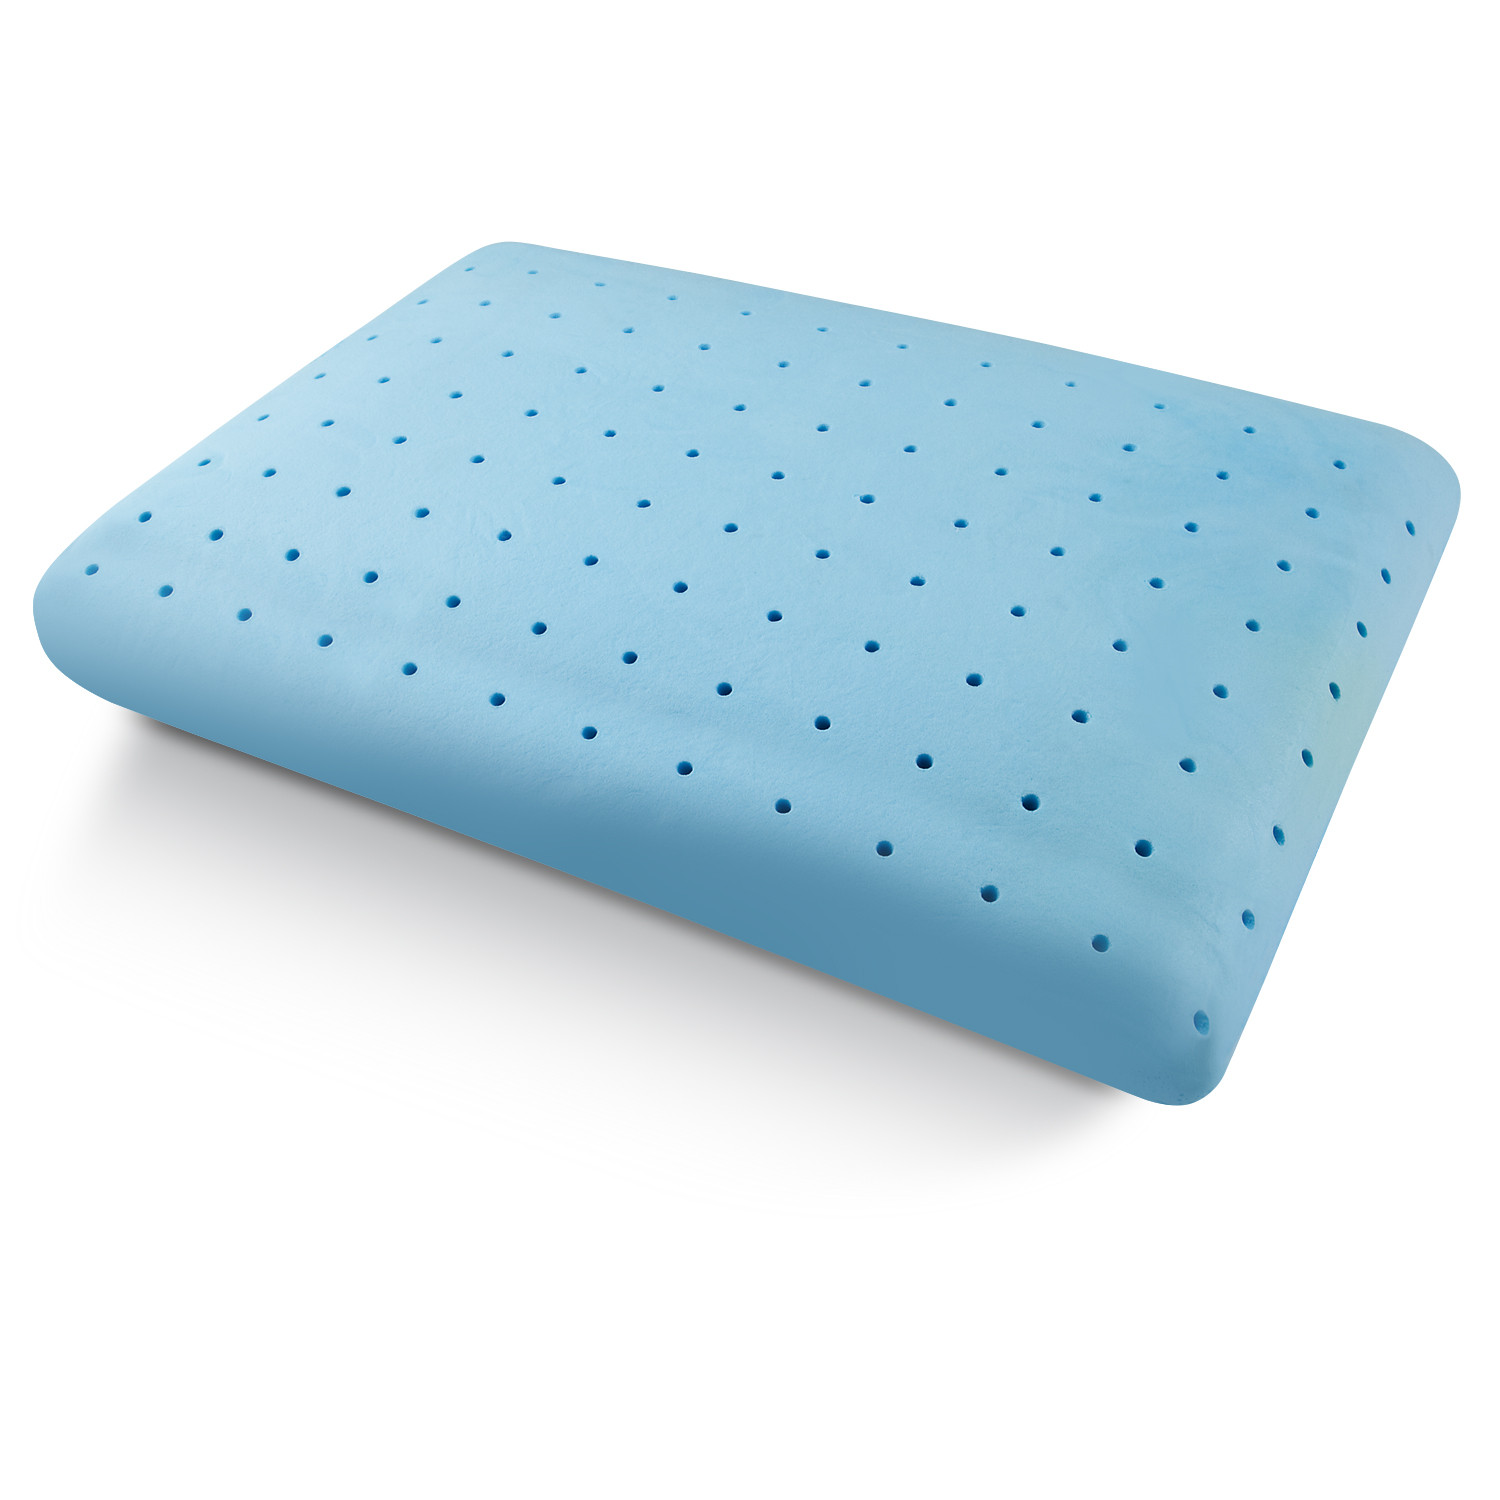 Tempure Rest Cool Comfort Ventilated Memory Foam Gel Pillow - Pure Rest by Rio Home Fashions ...